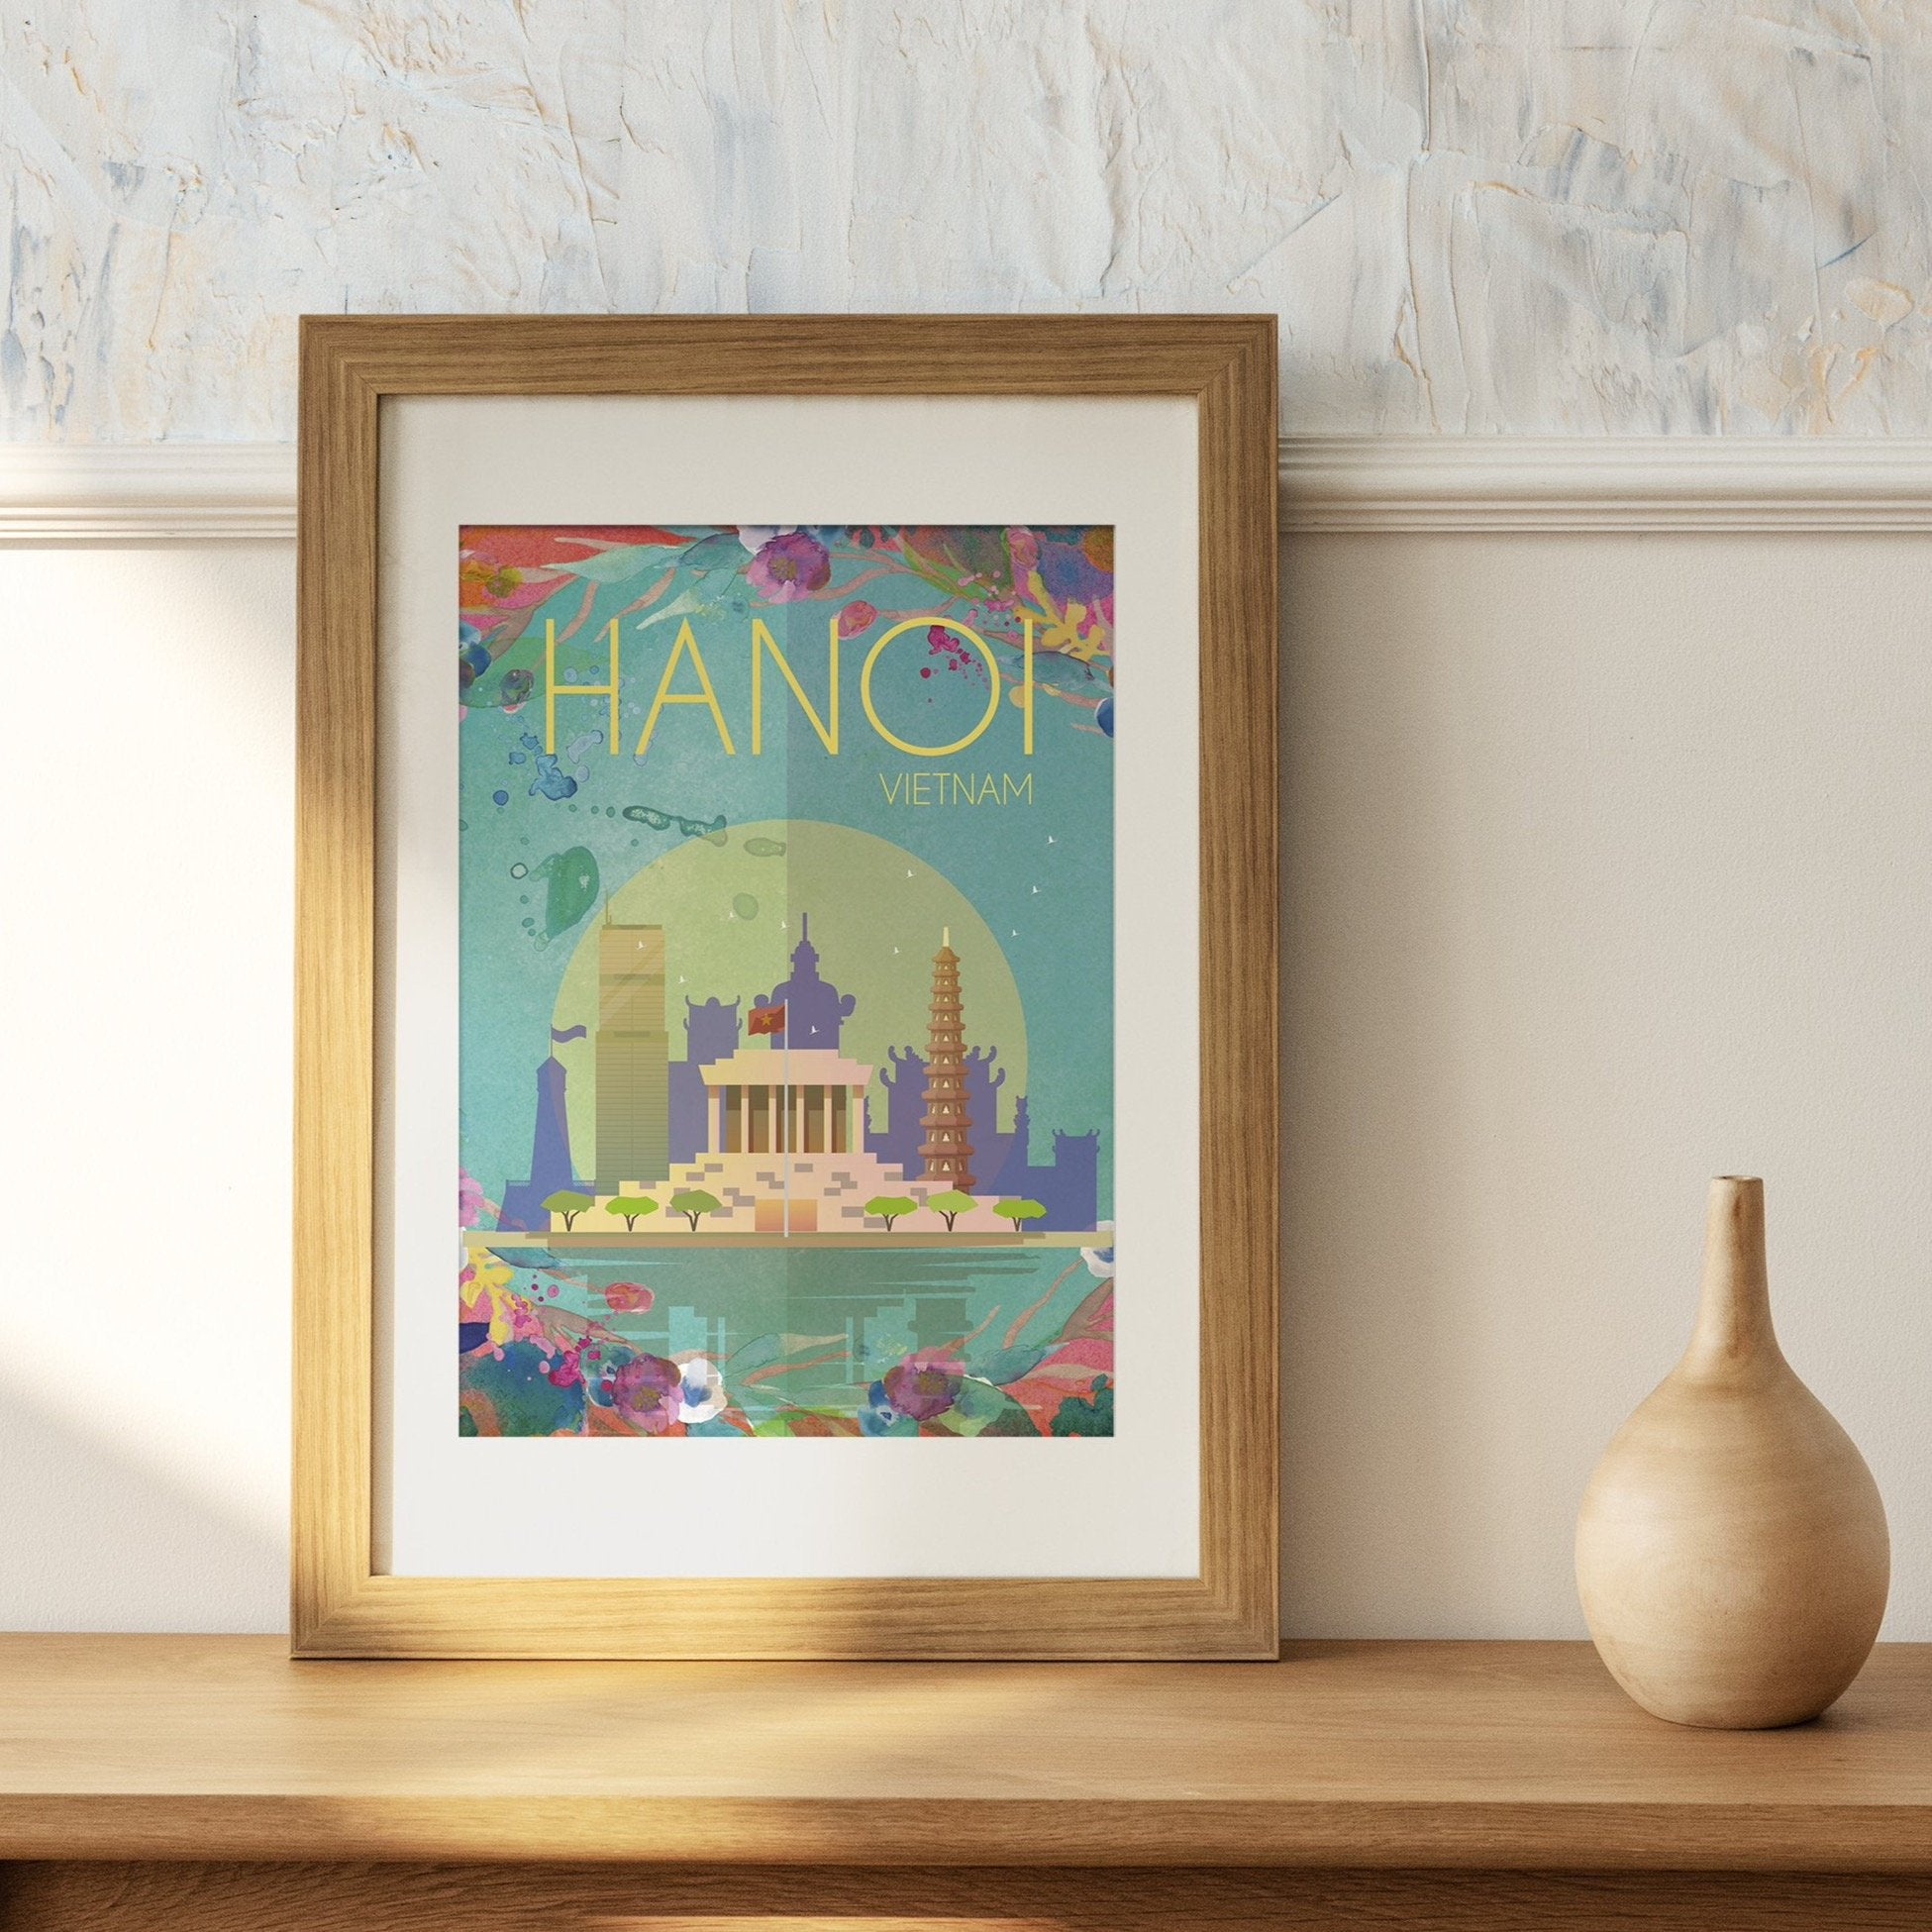 Hanoi, Vietnam fine art travel print